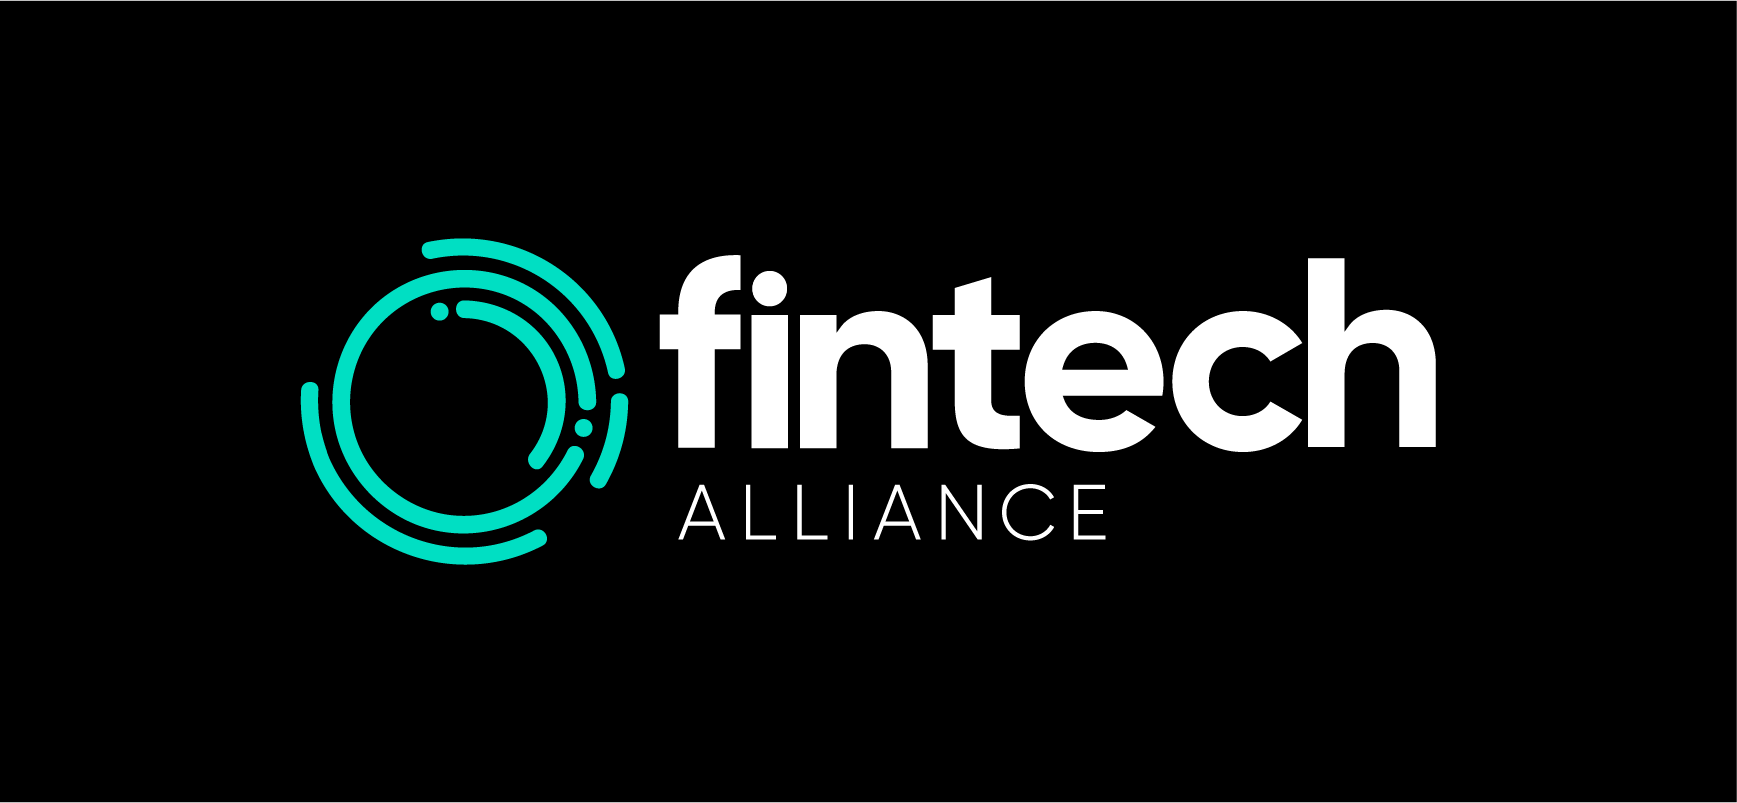 Newly launched FinTechs hoping to disrupt the market in 2020